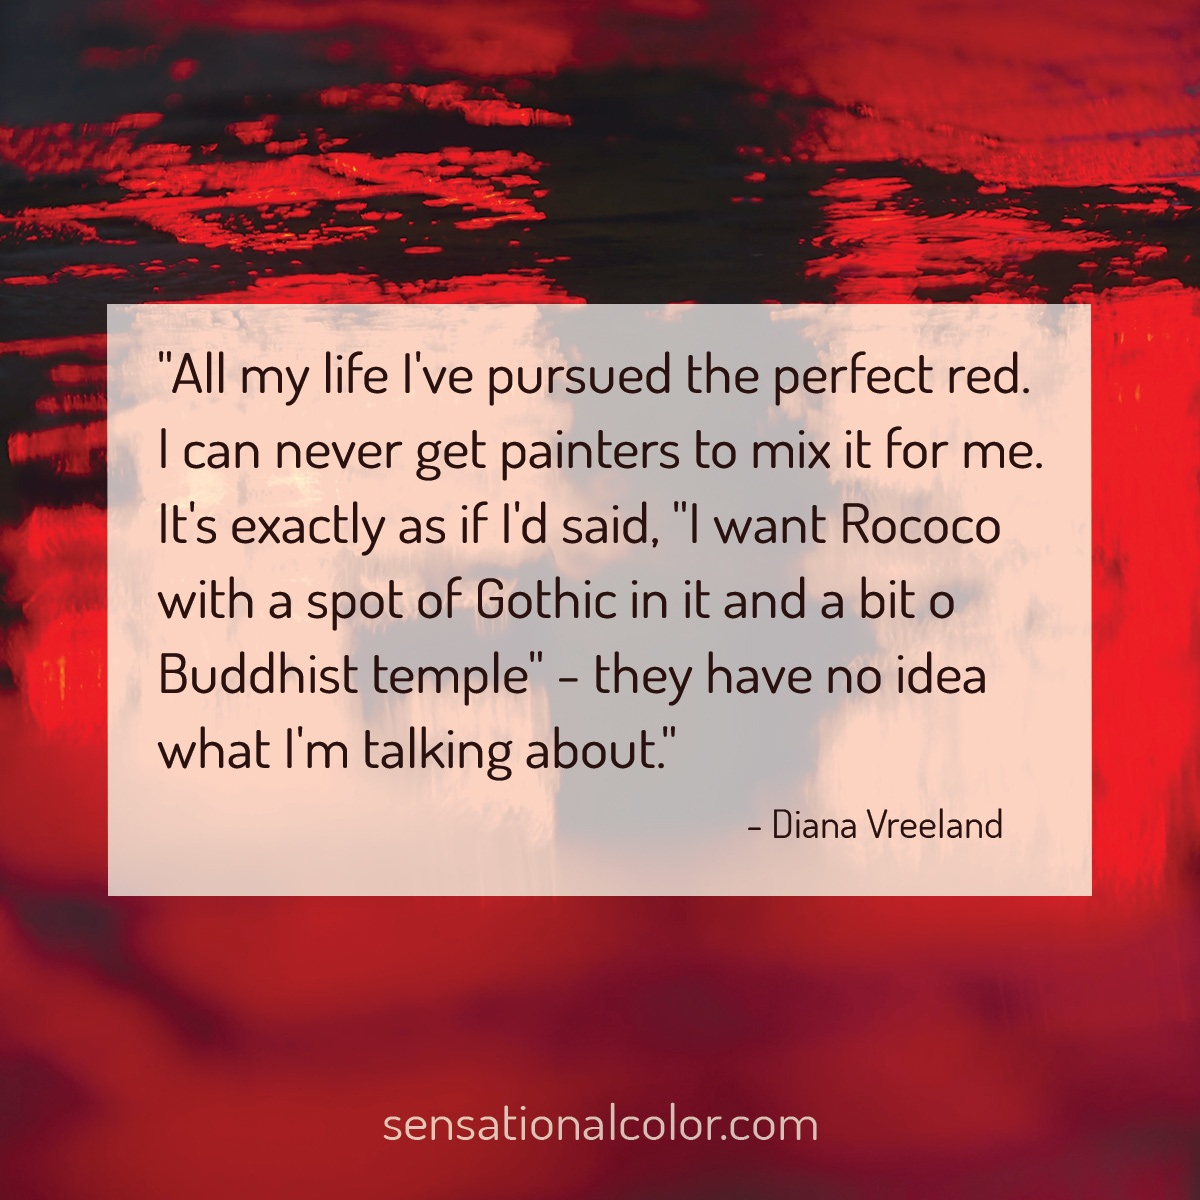 "All my life I've pursued the perfect red. I can never get painters to mix it for me. It's exactly as if I'd said, I want Rococo with a spot of Gothic in it and a bit of Buddhist temple"" - they have no idea what I'm talking about."" - Diana Vreeland"